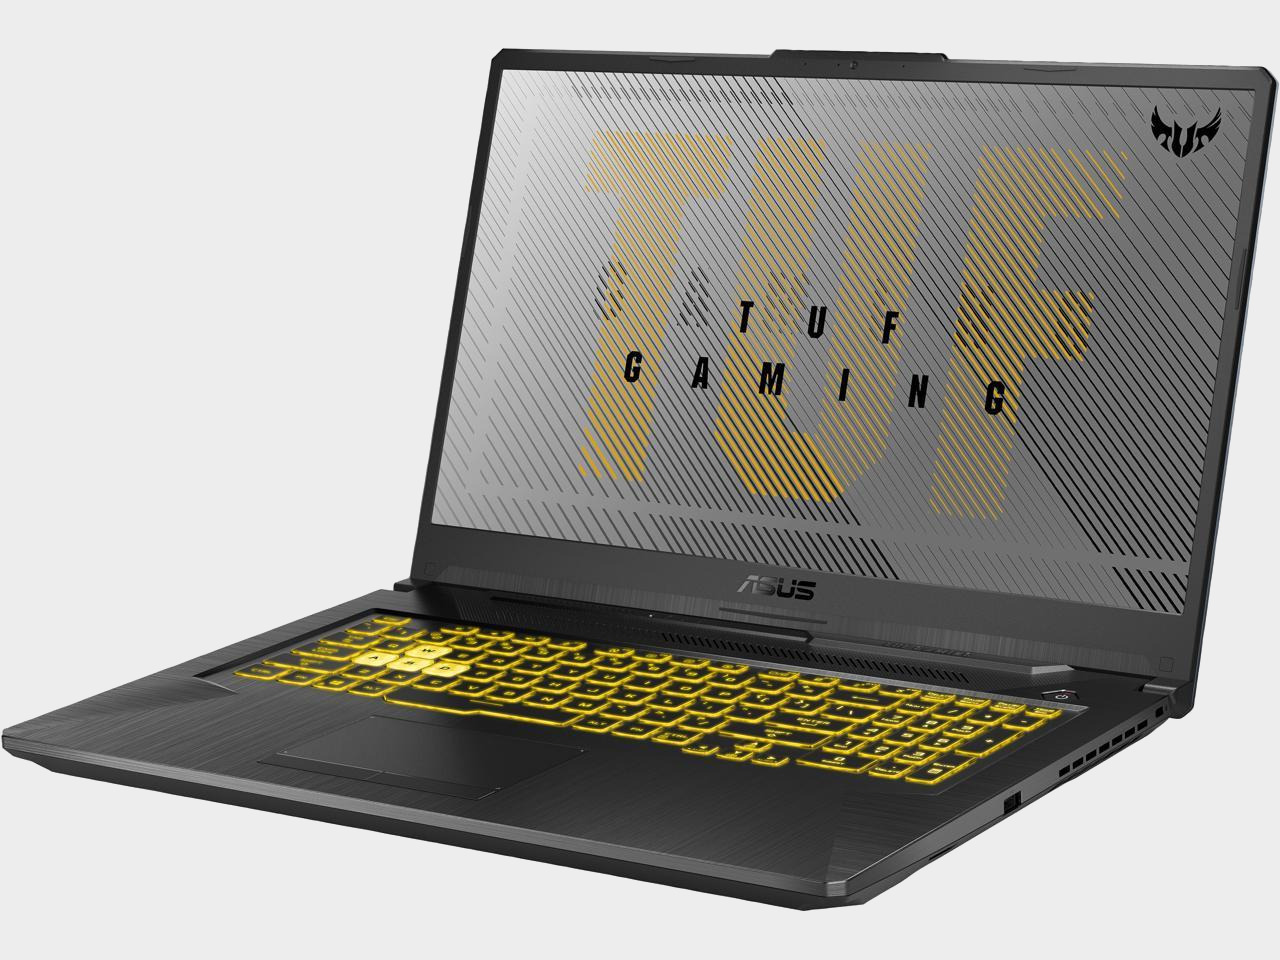 This Asus gaming laptop has a Ryzen CPU and 16GB RAM for only $850